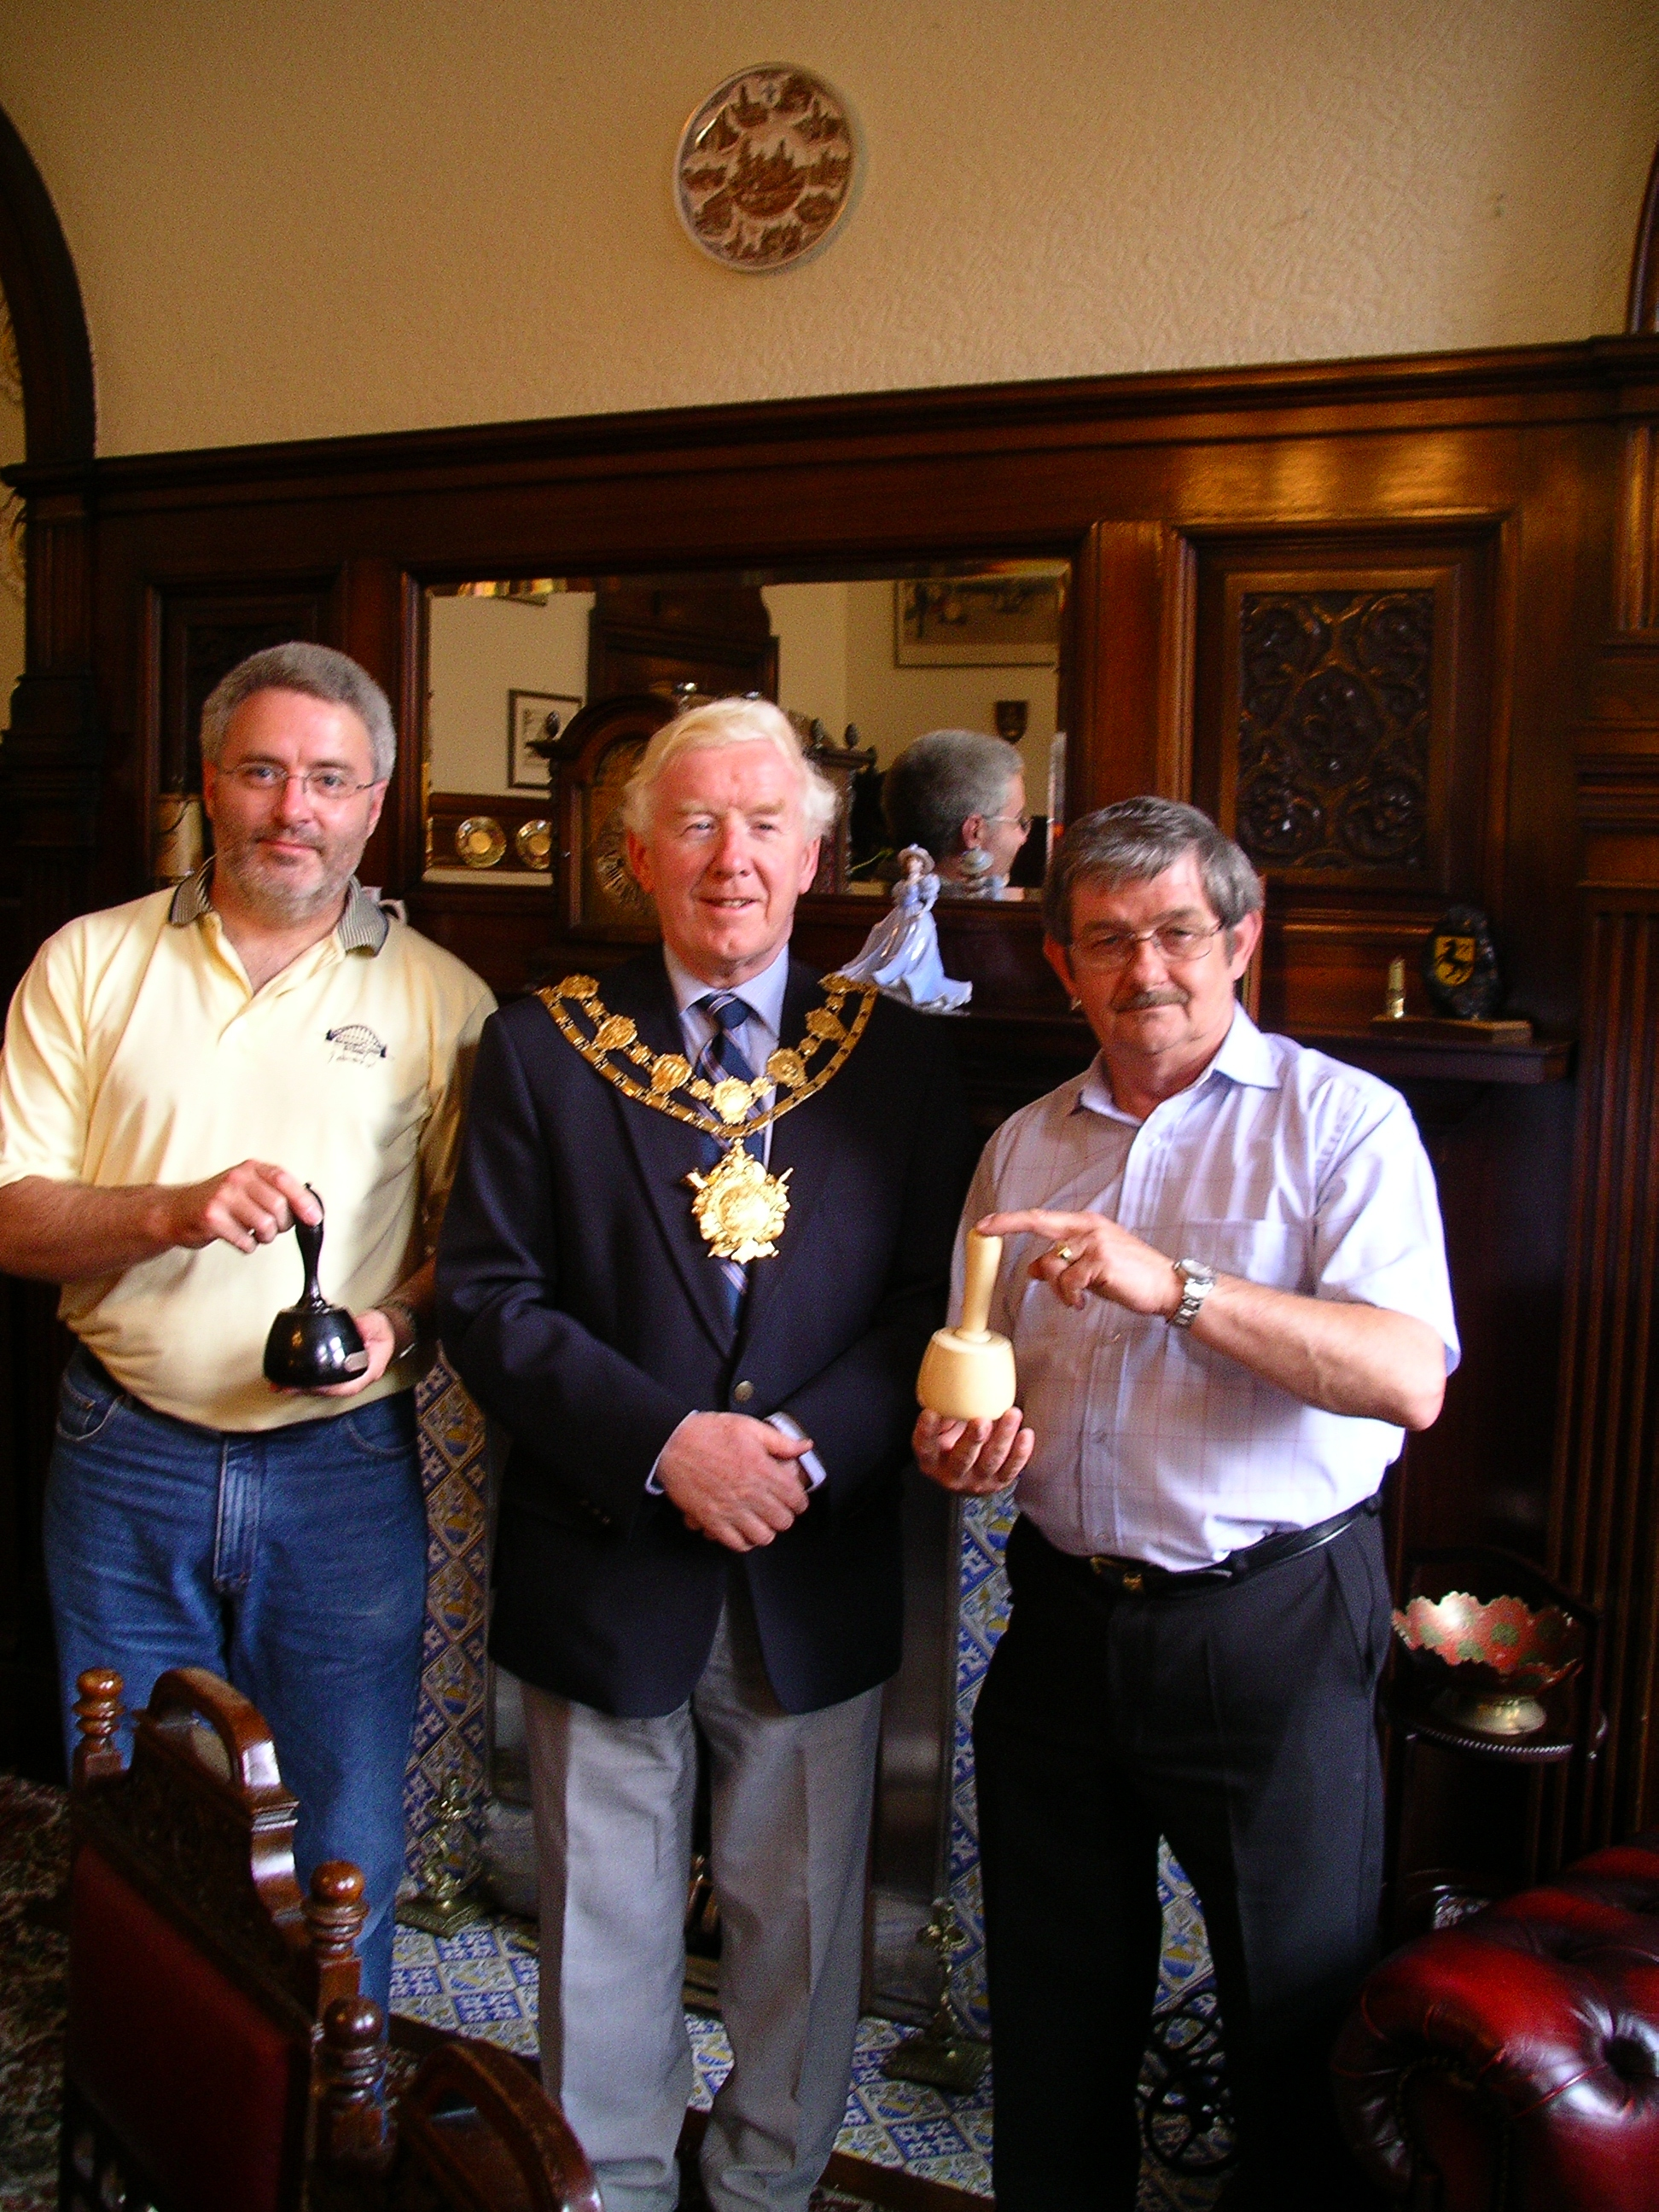 Meeting Patrick Bagnall & the Mayor of Wakefield